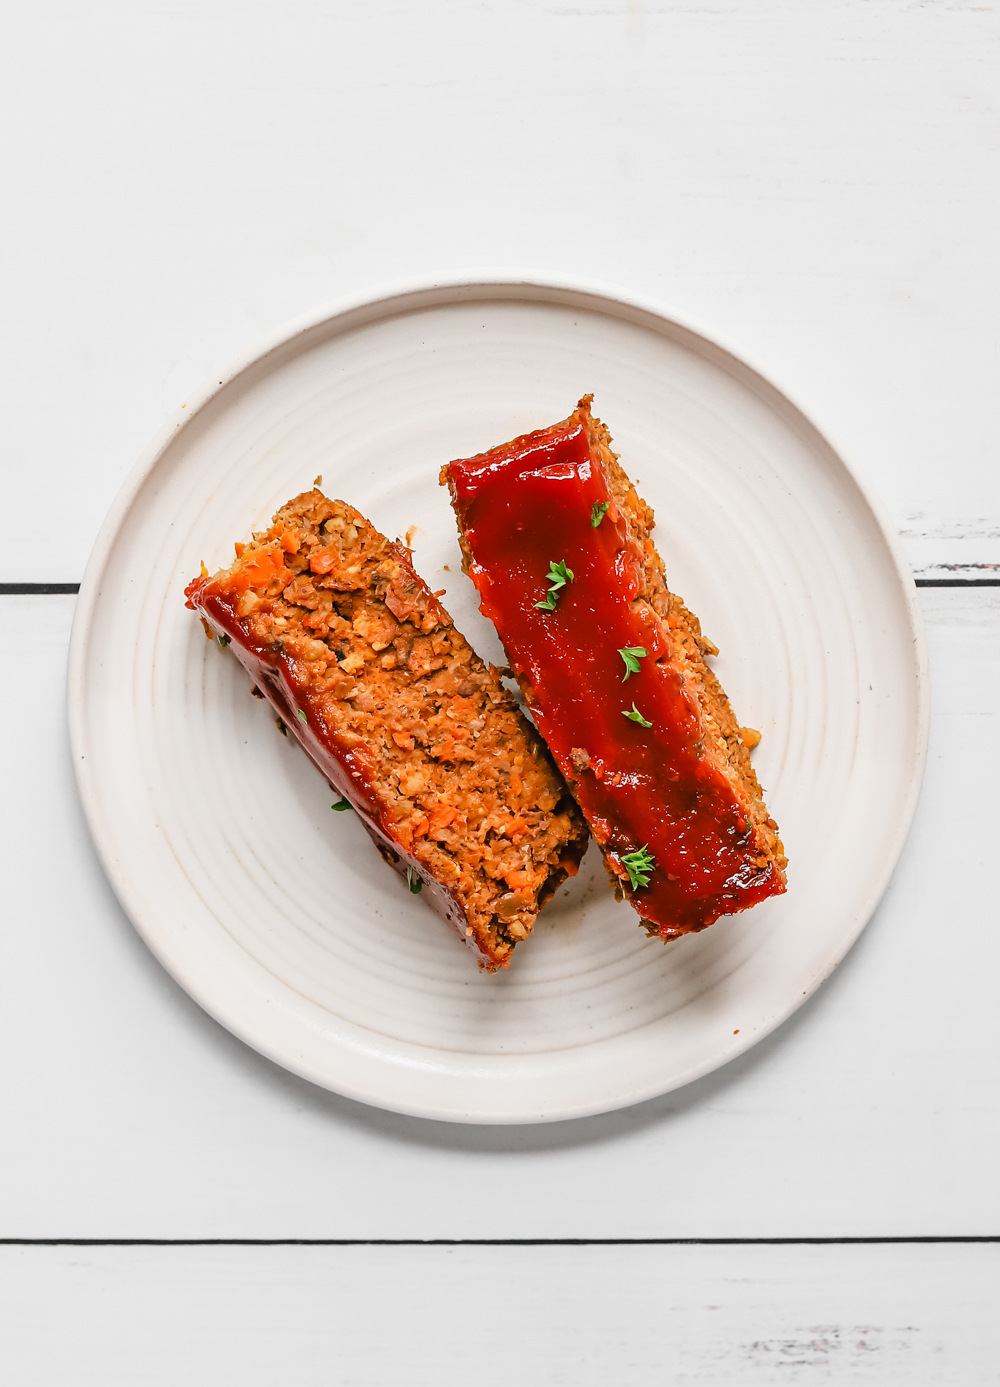 Two slices of vegan lentil meatloaf on a white place topped with a little bit of parsley.